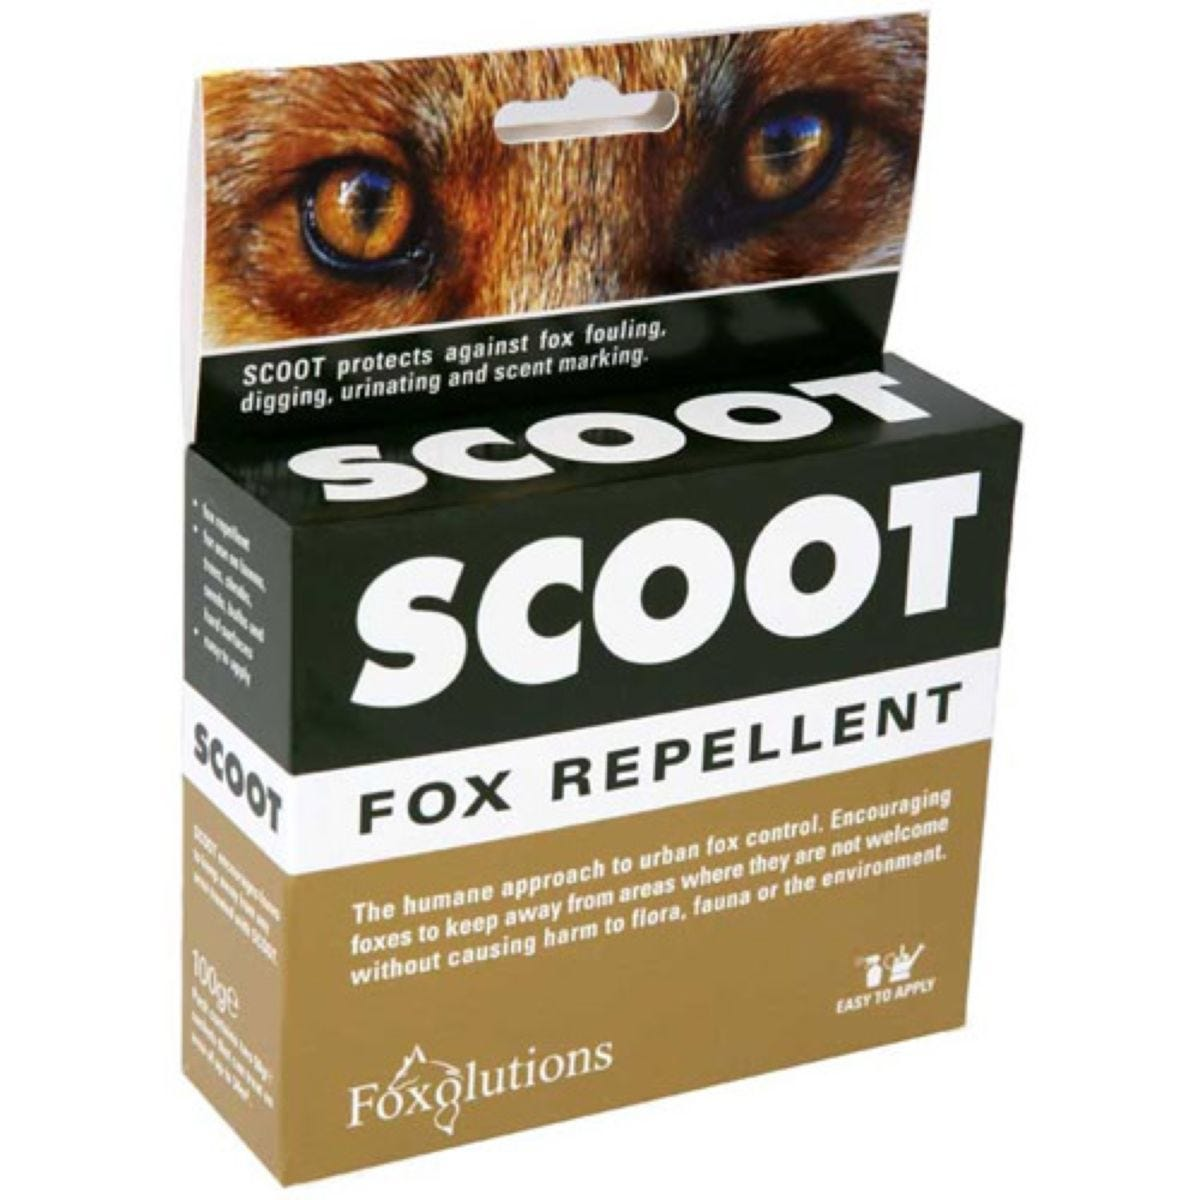 Scoot Fox Repellent 100g